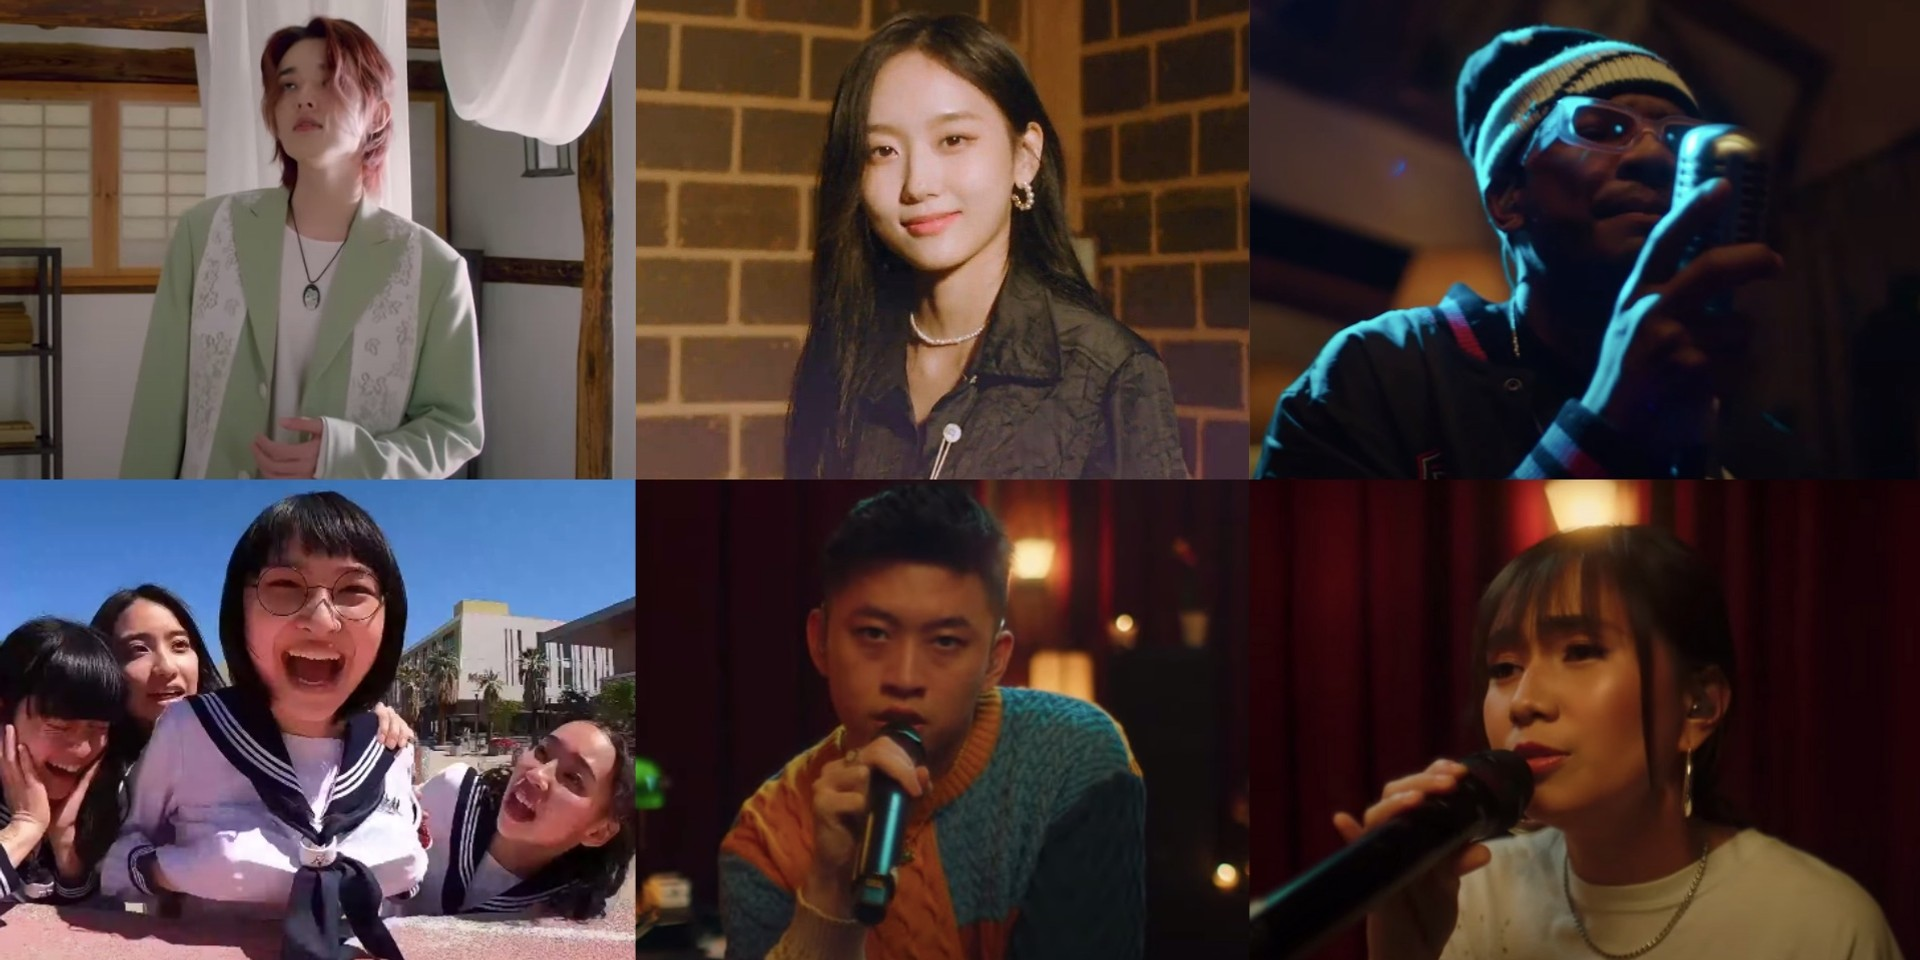 9 highlights from 88rising's 'Asia Rising Together' concert — featuring DAY6's Jae, Seori, Guapdad 4000, NIKI, Rich Brian, and more